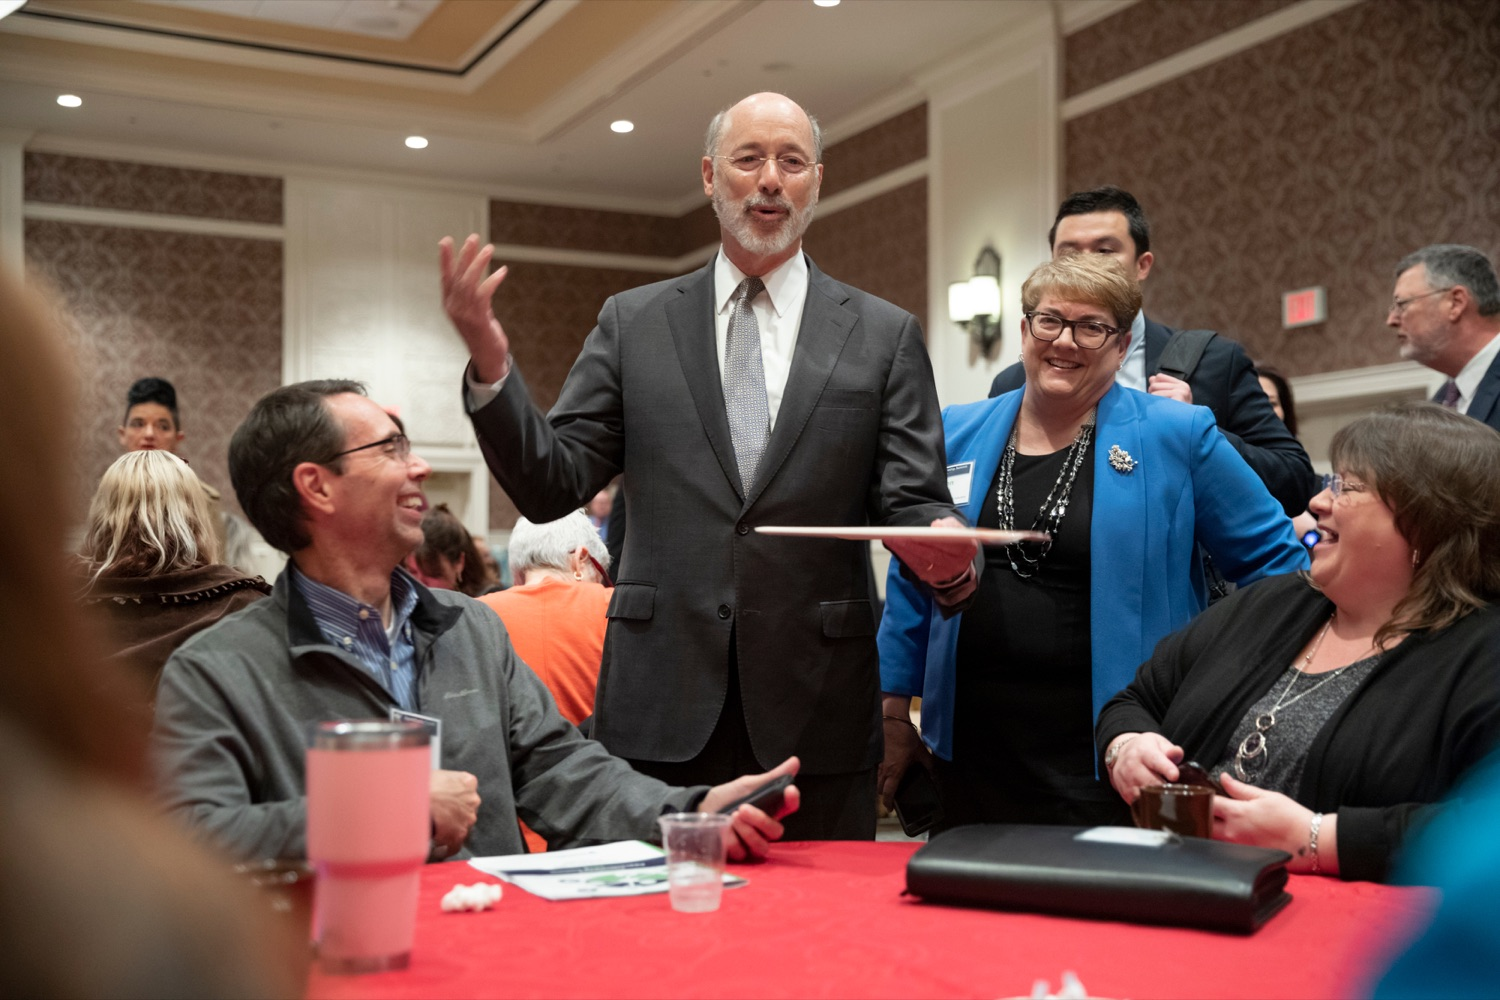 "<a href=""http://filesource.abacast.com/commonwealthofpa/photo/17520_LandI_Apprenticeships_NK_012.JPG"" target=""_blank"">⇣ Download Photo<br></a>Pennsylvania Governor Tom Wolf talks with people during the 2019 Pennsylvania Apprenticeship Summit at Hershey Lodge on Thursday, October 31, 2019."